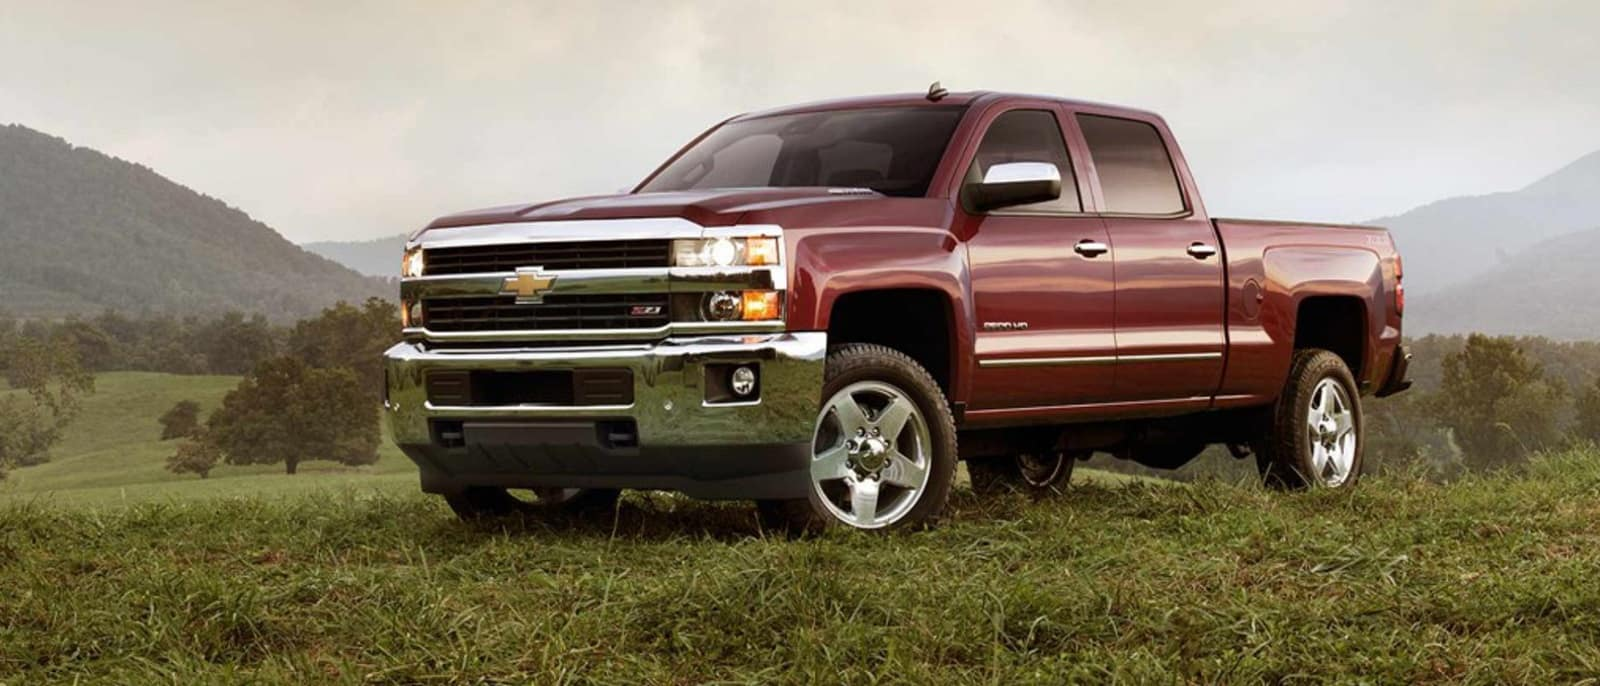 2015 Chevy Silverado front side view.